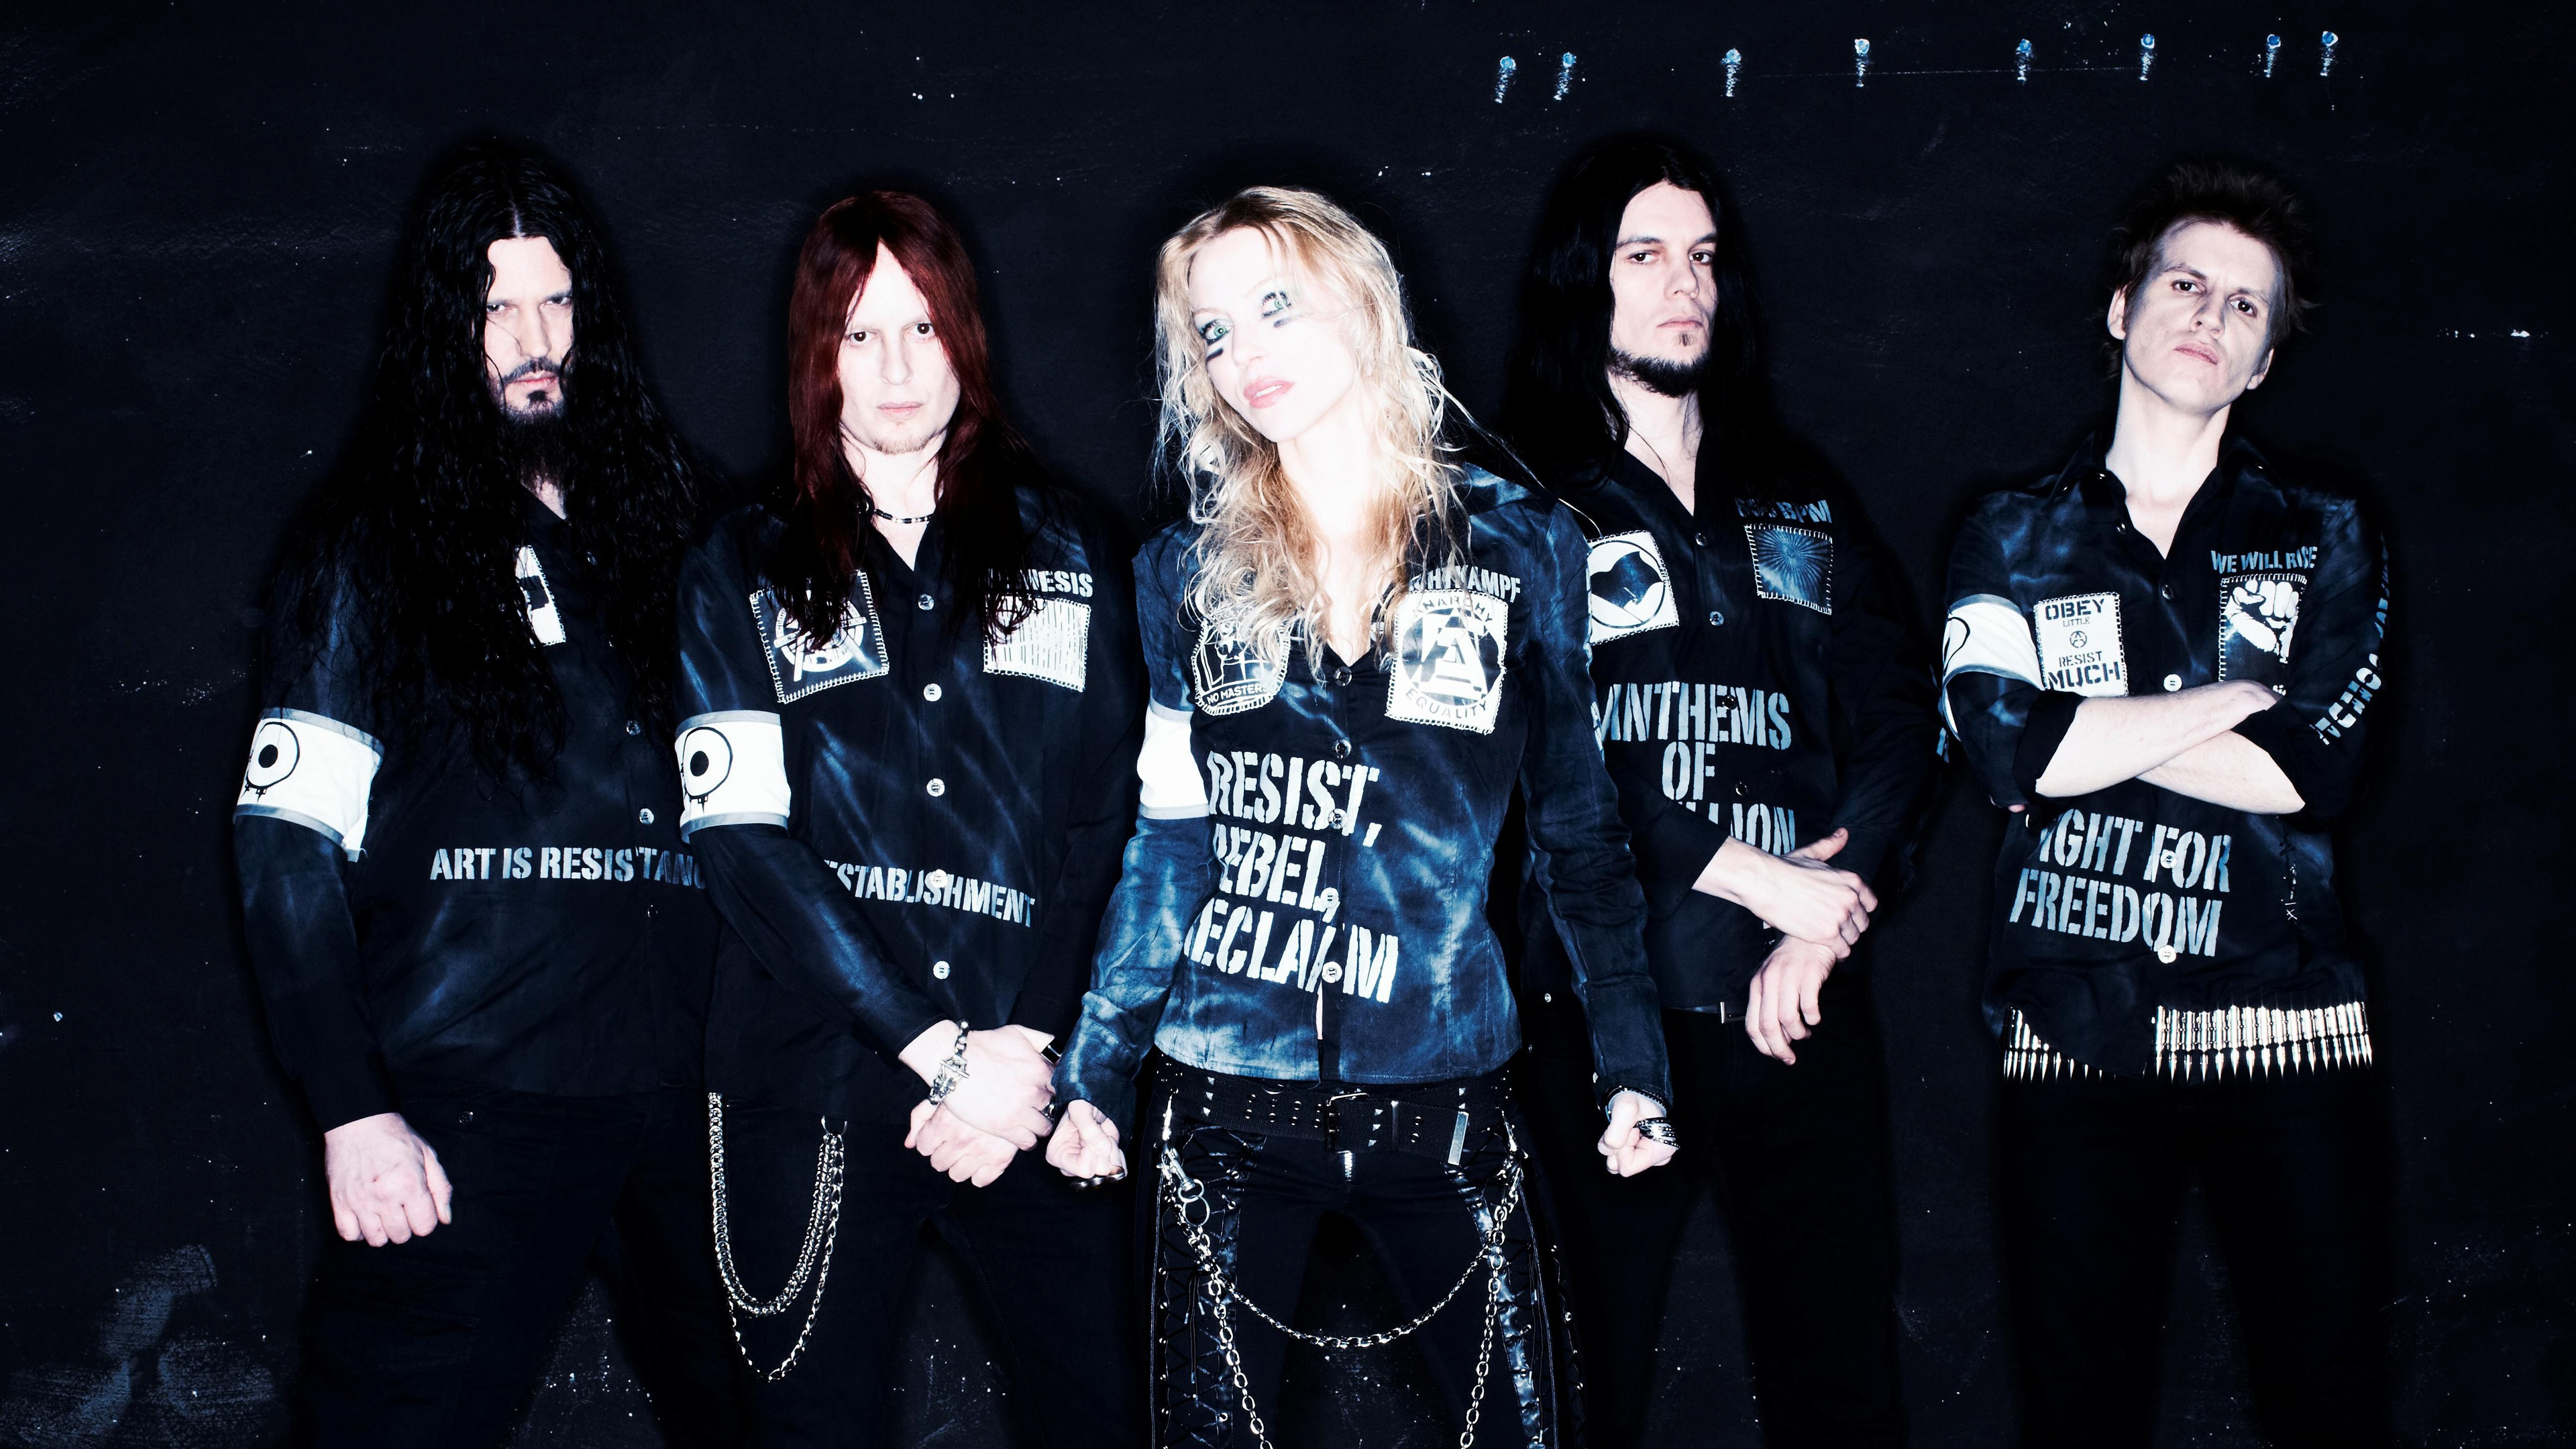 Wallpaper Arch Enemy 03 3840x2160 Uhd 4k Picture Image